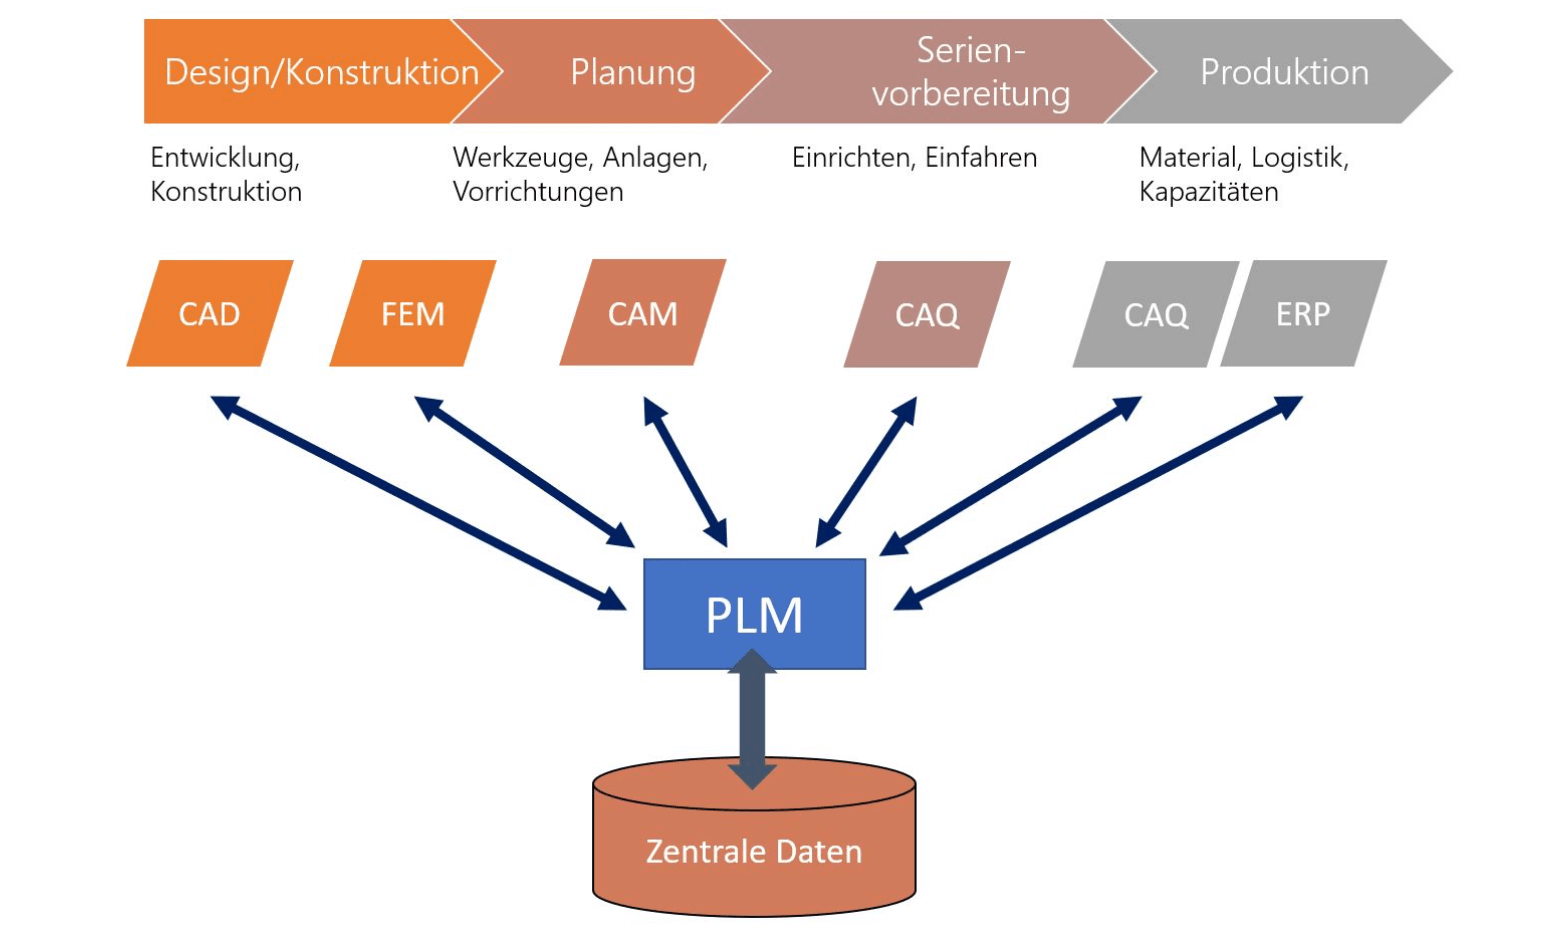 Product Lifecycle Management (PLM) als Integrationsmittelpunkt